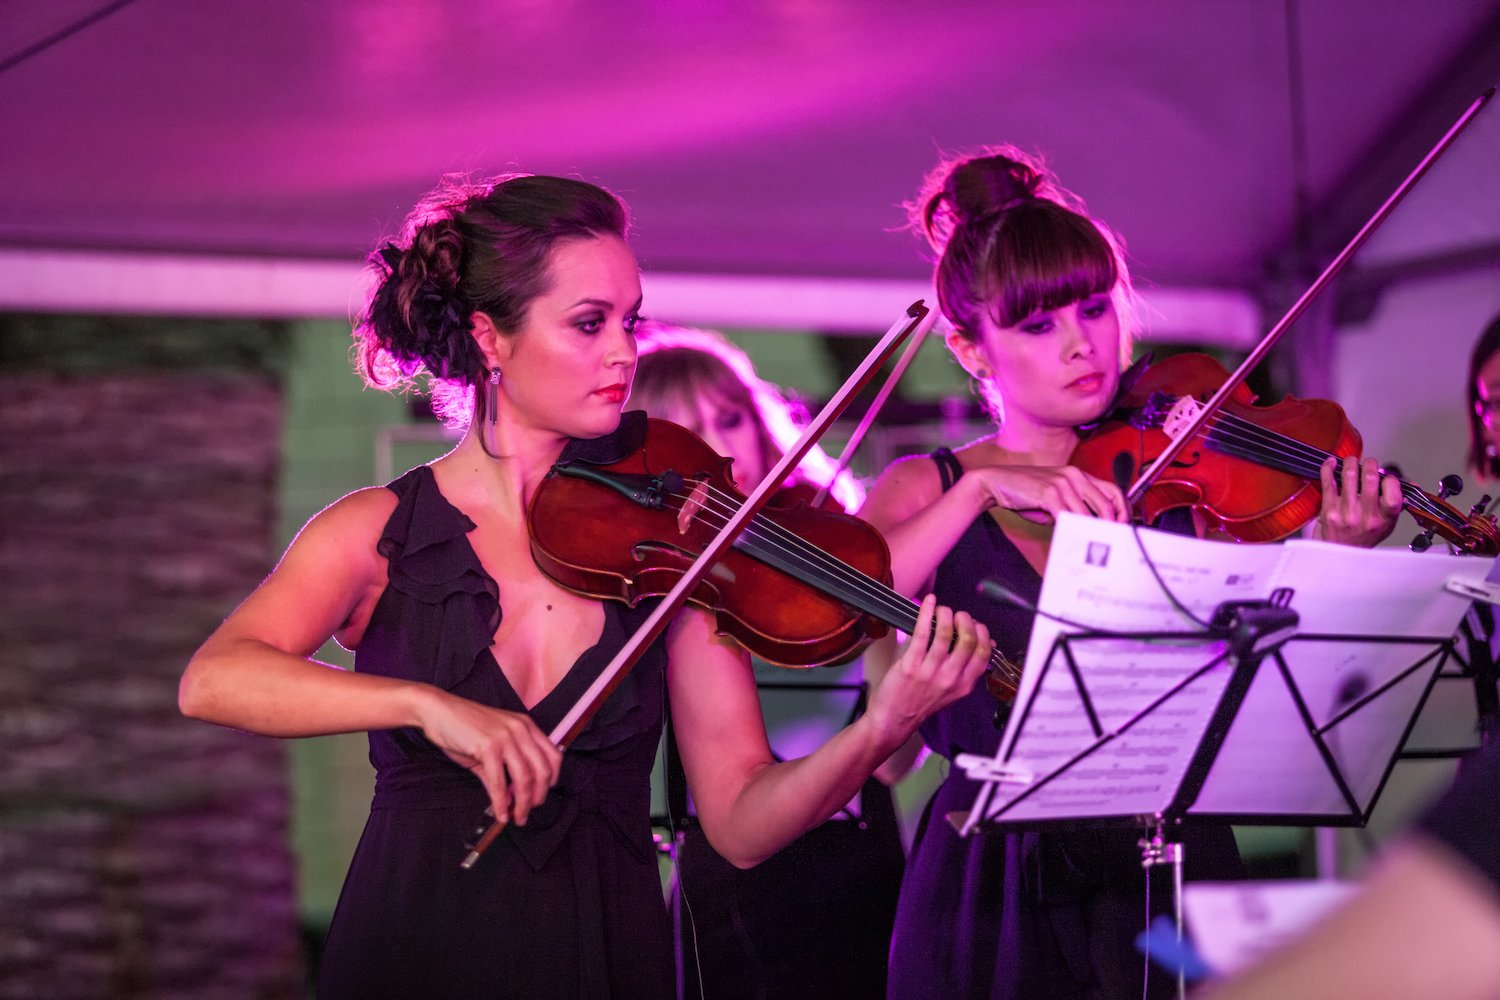 Our outdoor public orchestra concert in Claremont, Perth.